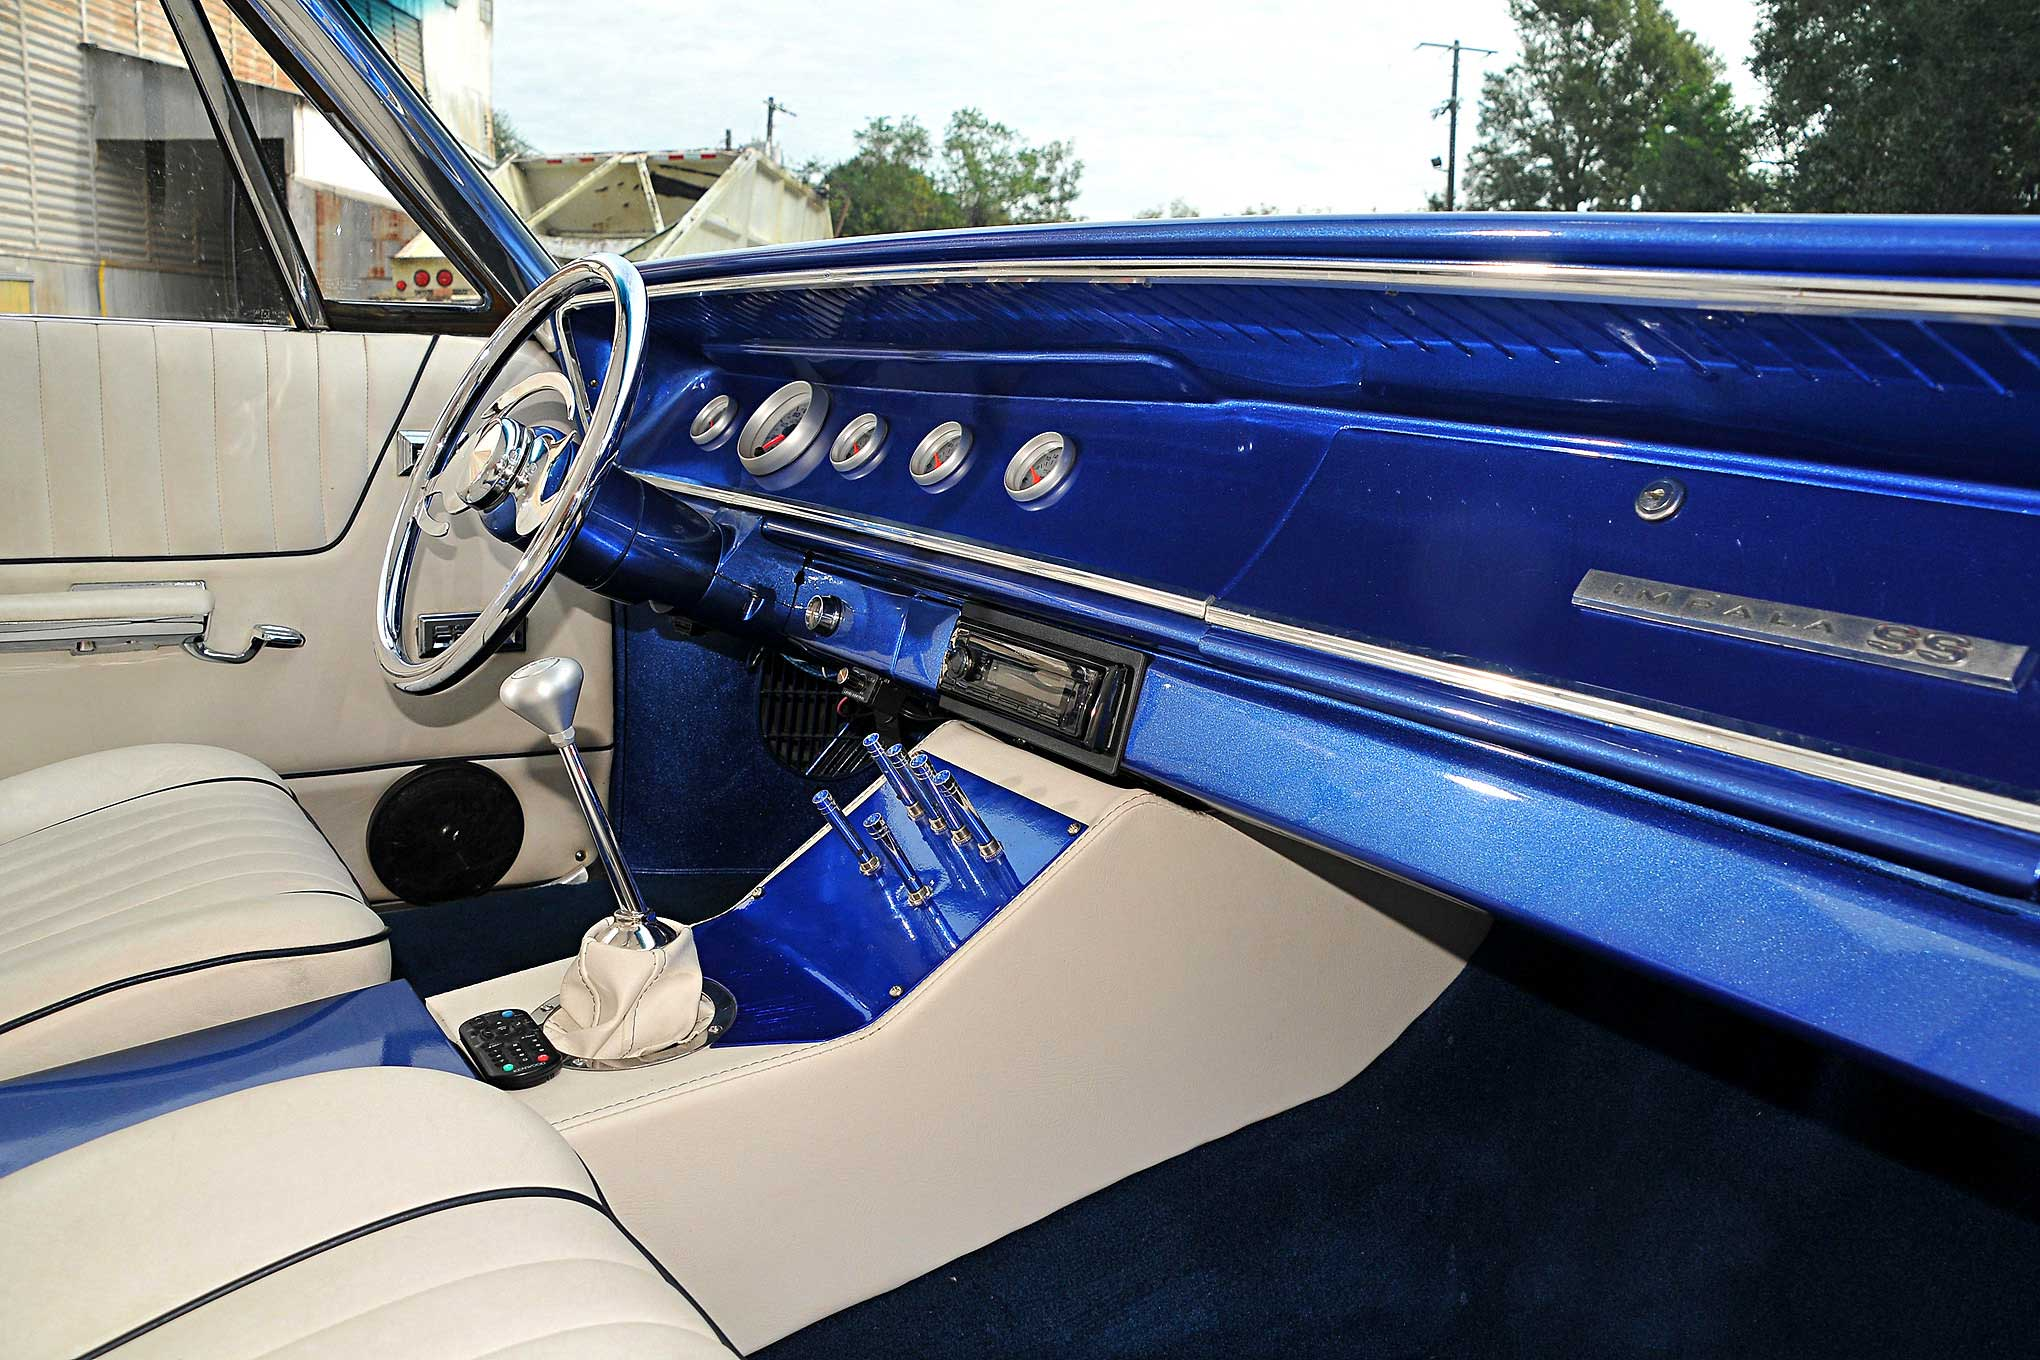 1965 Chevy Impala SS Hardtop - Change of Plans